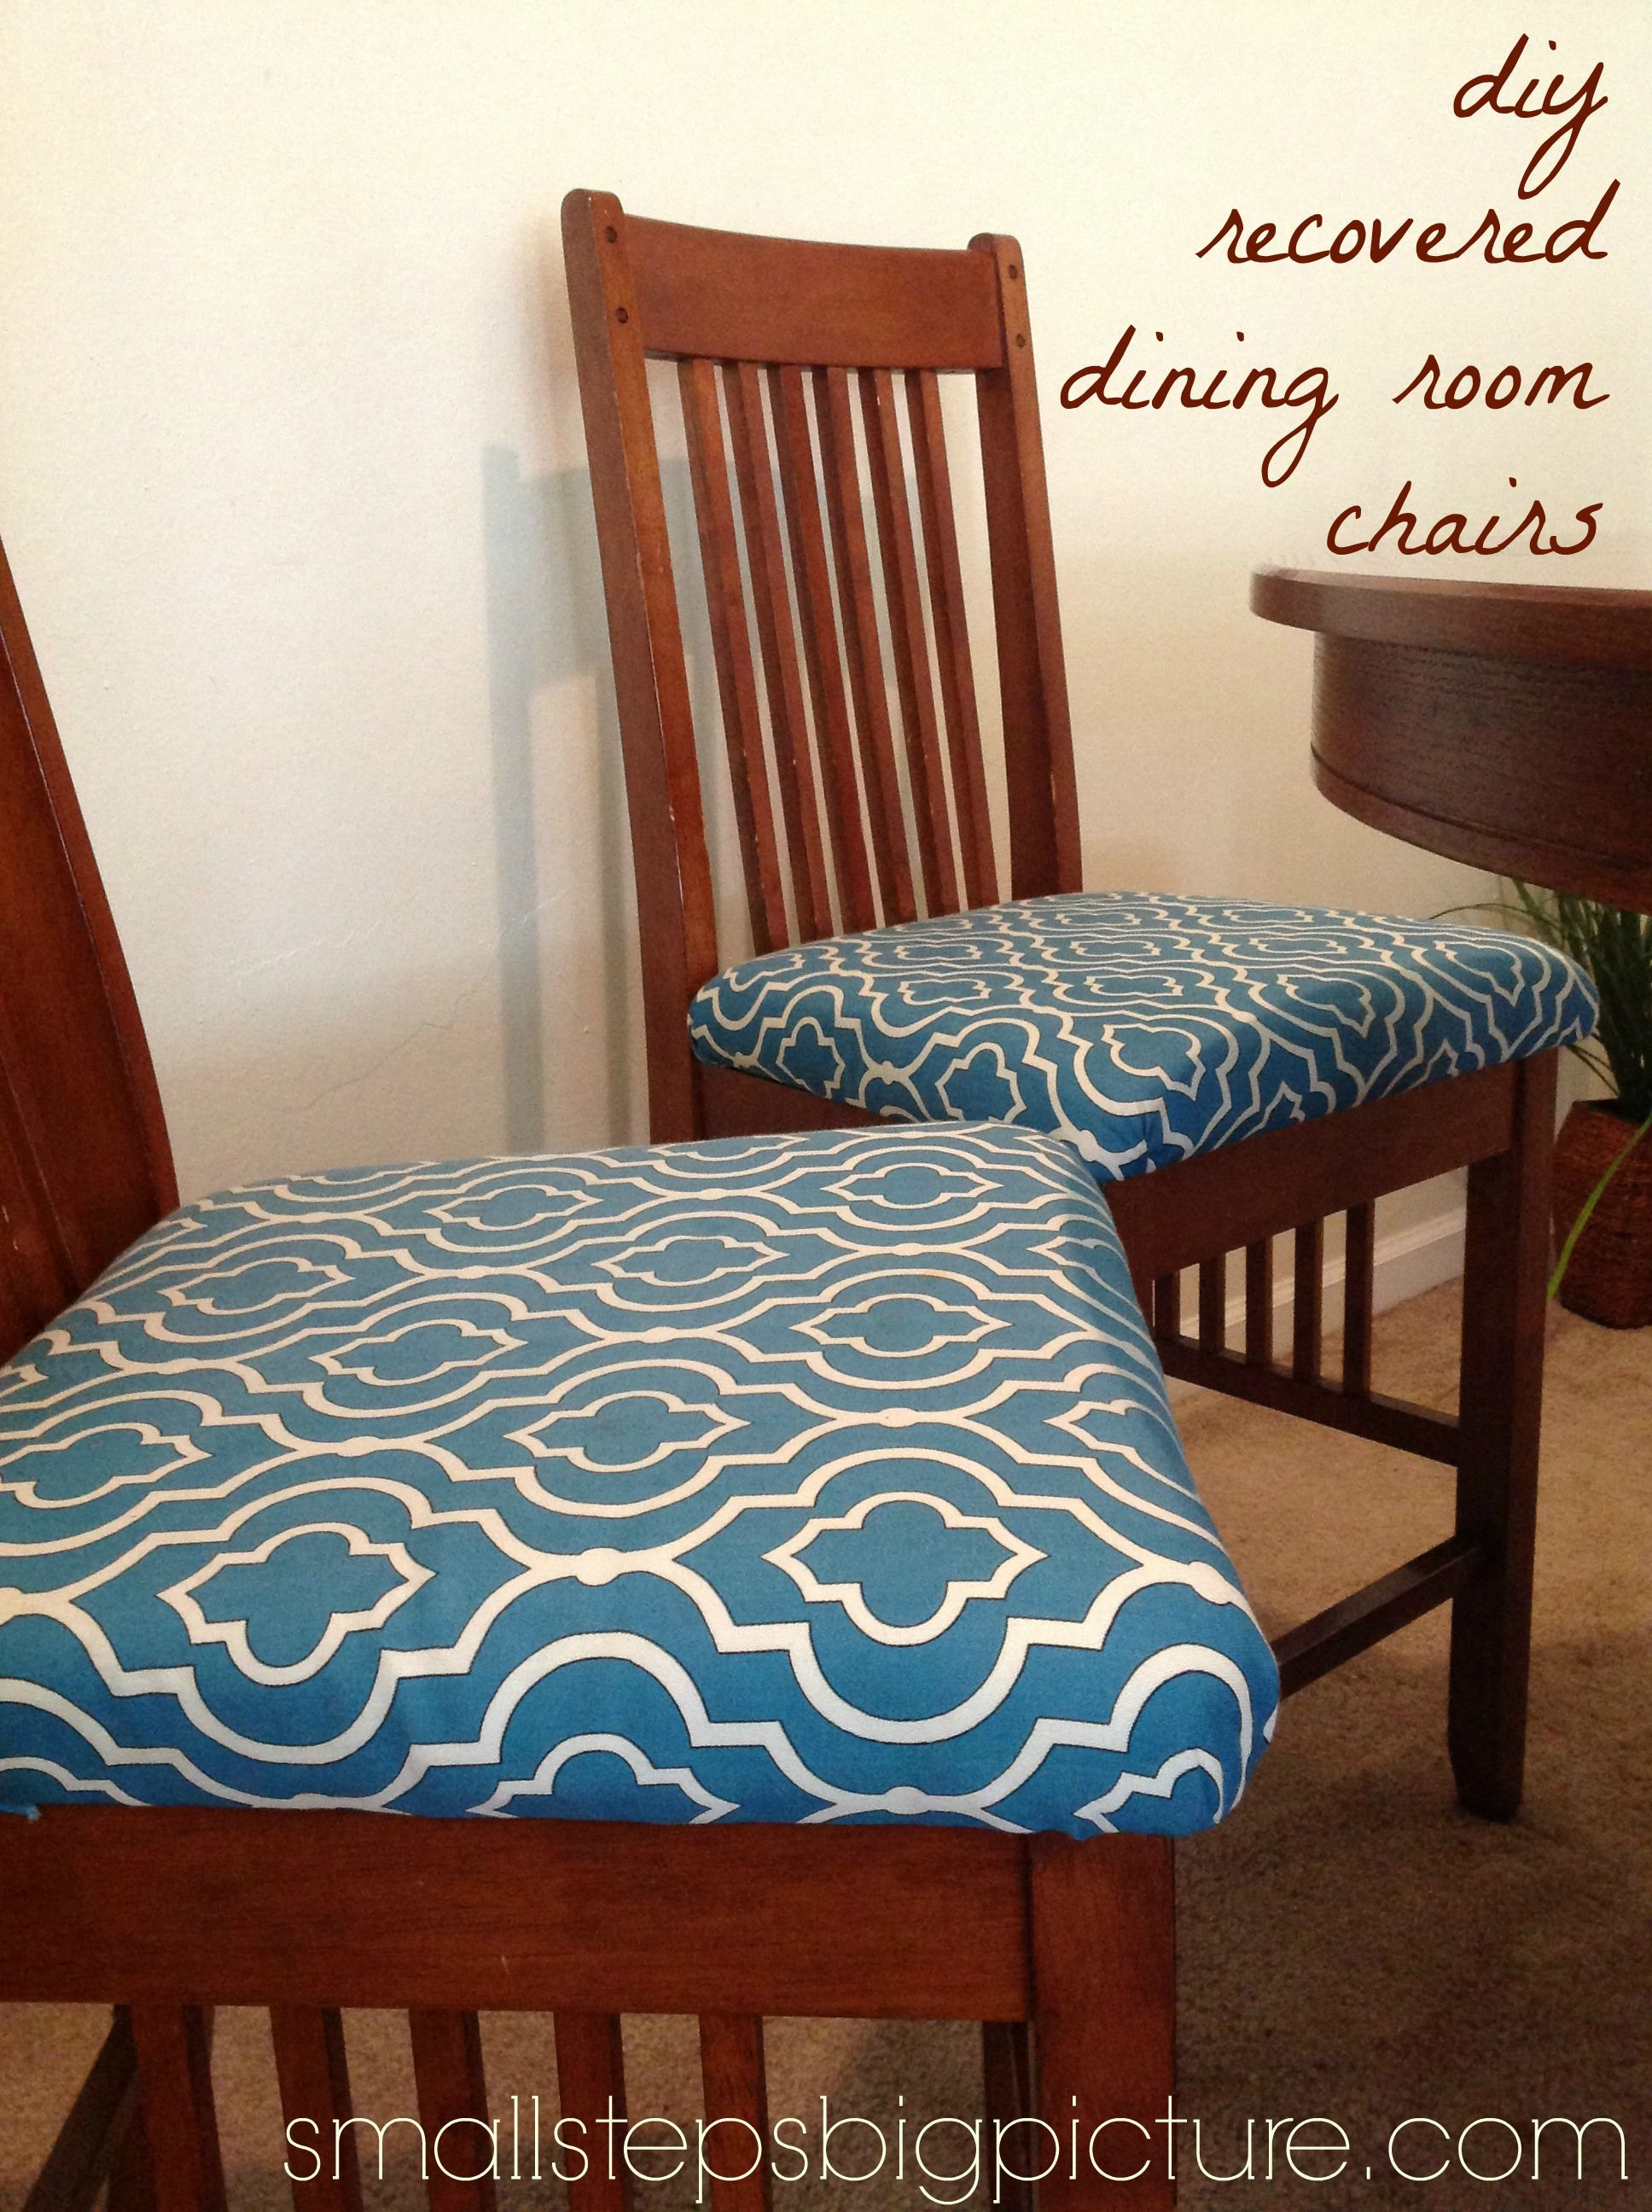 Diy recovered dining room chairs Crafty Pinterest Adhesive